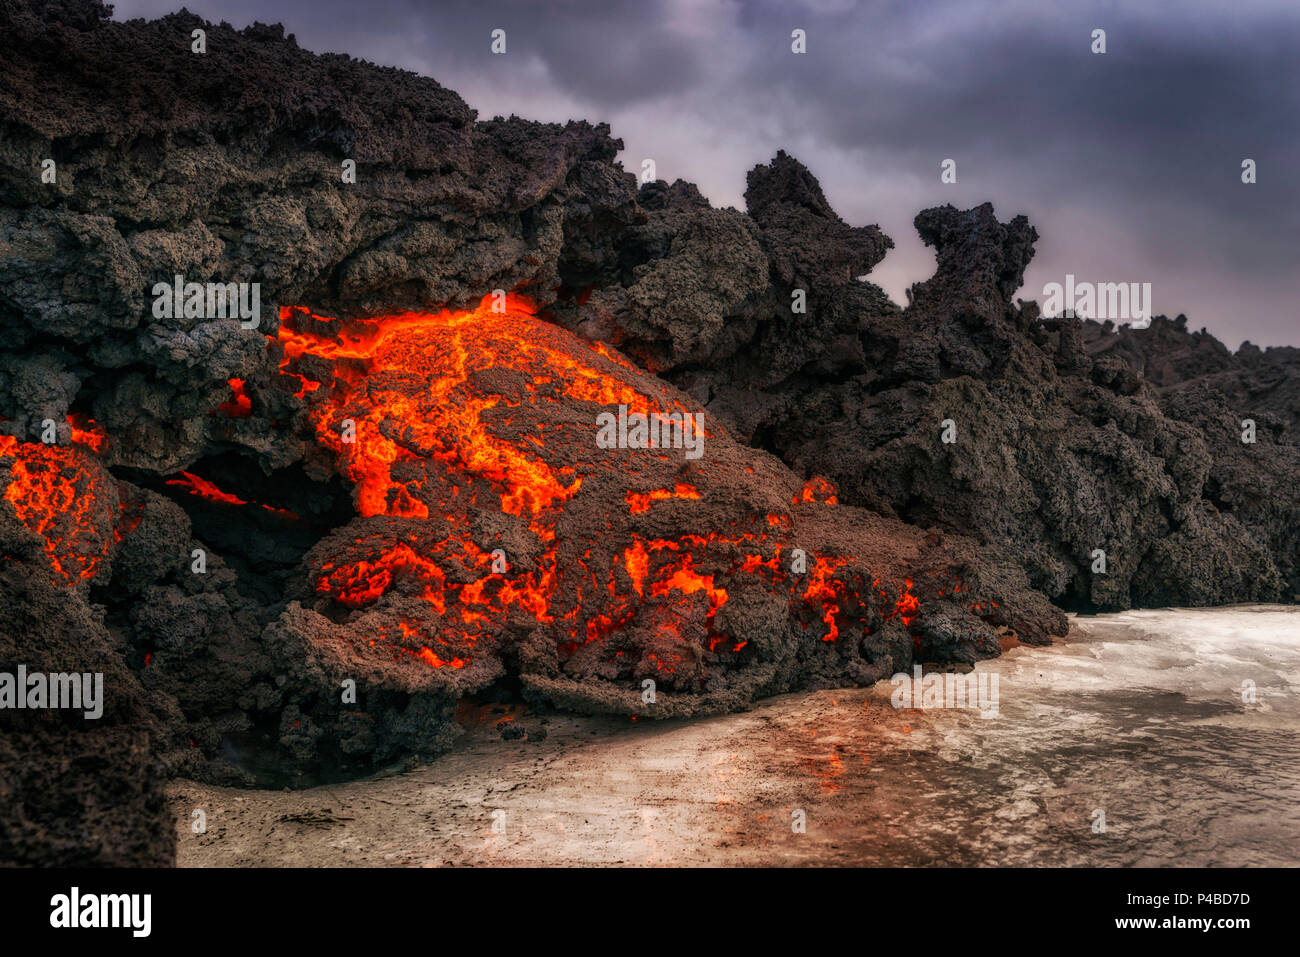 Glowing Lava flowing, Holuhraun Fissure Eruption, Bardarbunga Volcano, Iceland. August 29, 2014 a fissure eruption started in Holuhraun at the northern end of a magma intrusion, which had moved progressively north, from the Bardarbunga volcano. Picture Date: Feb. 2, 2015 - Stock Image